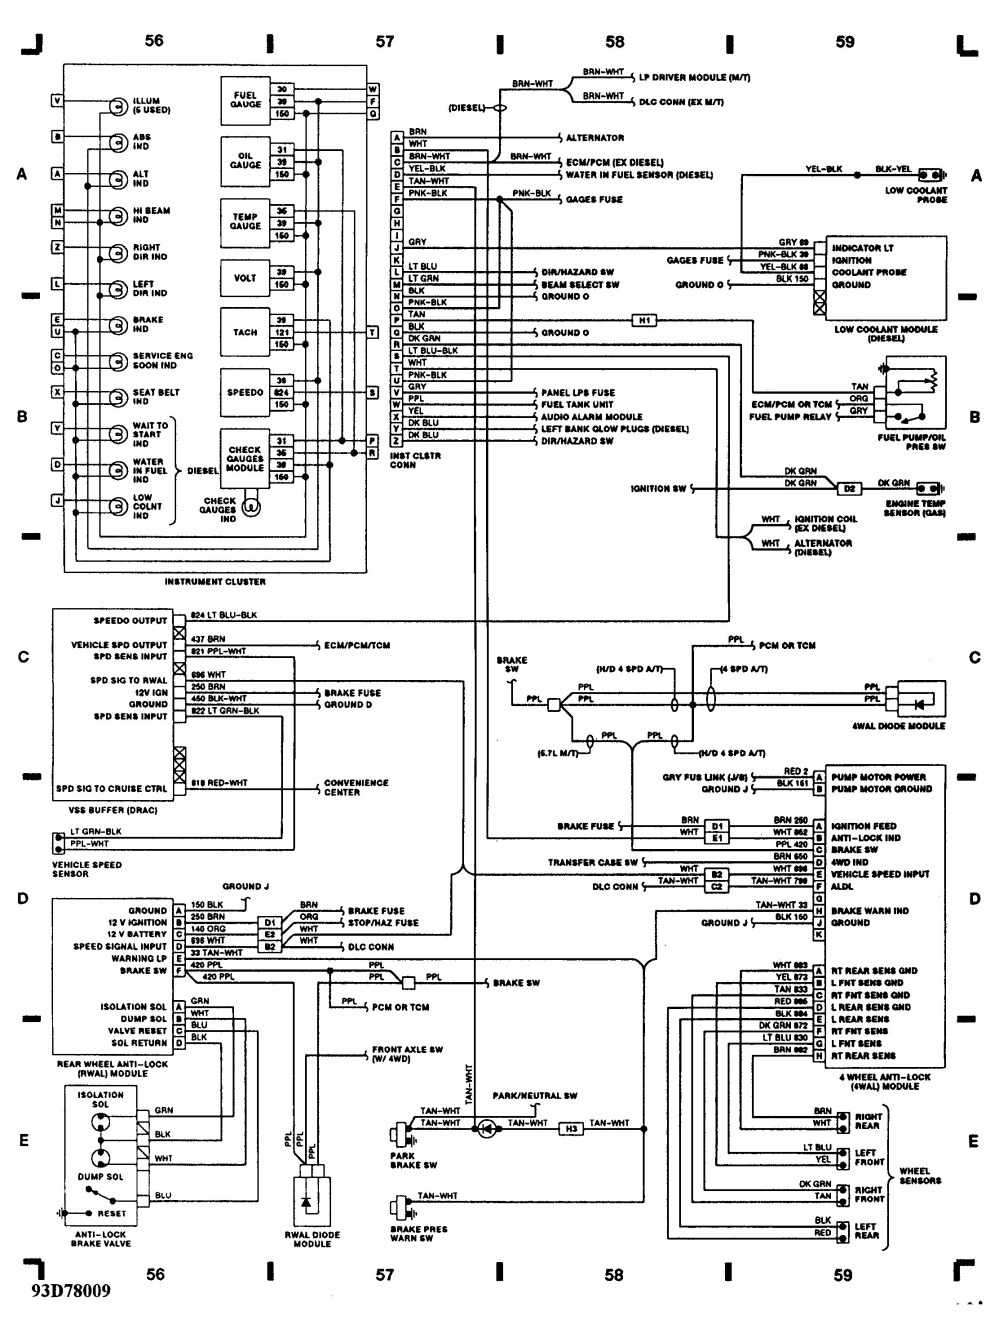 medium resolution of chevy ls wiring diagram wiring diagram user 2002 chevy impala ls radio wiring diagram chevy ls wiring diagram